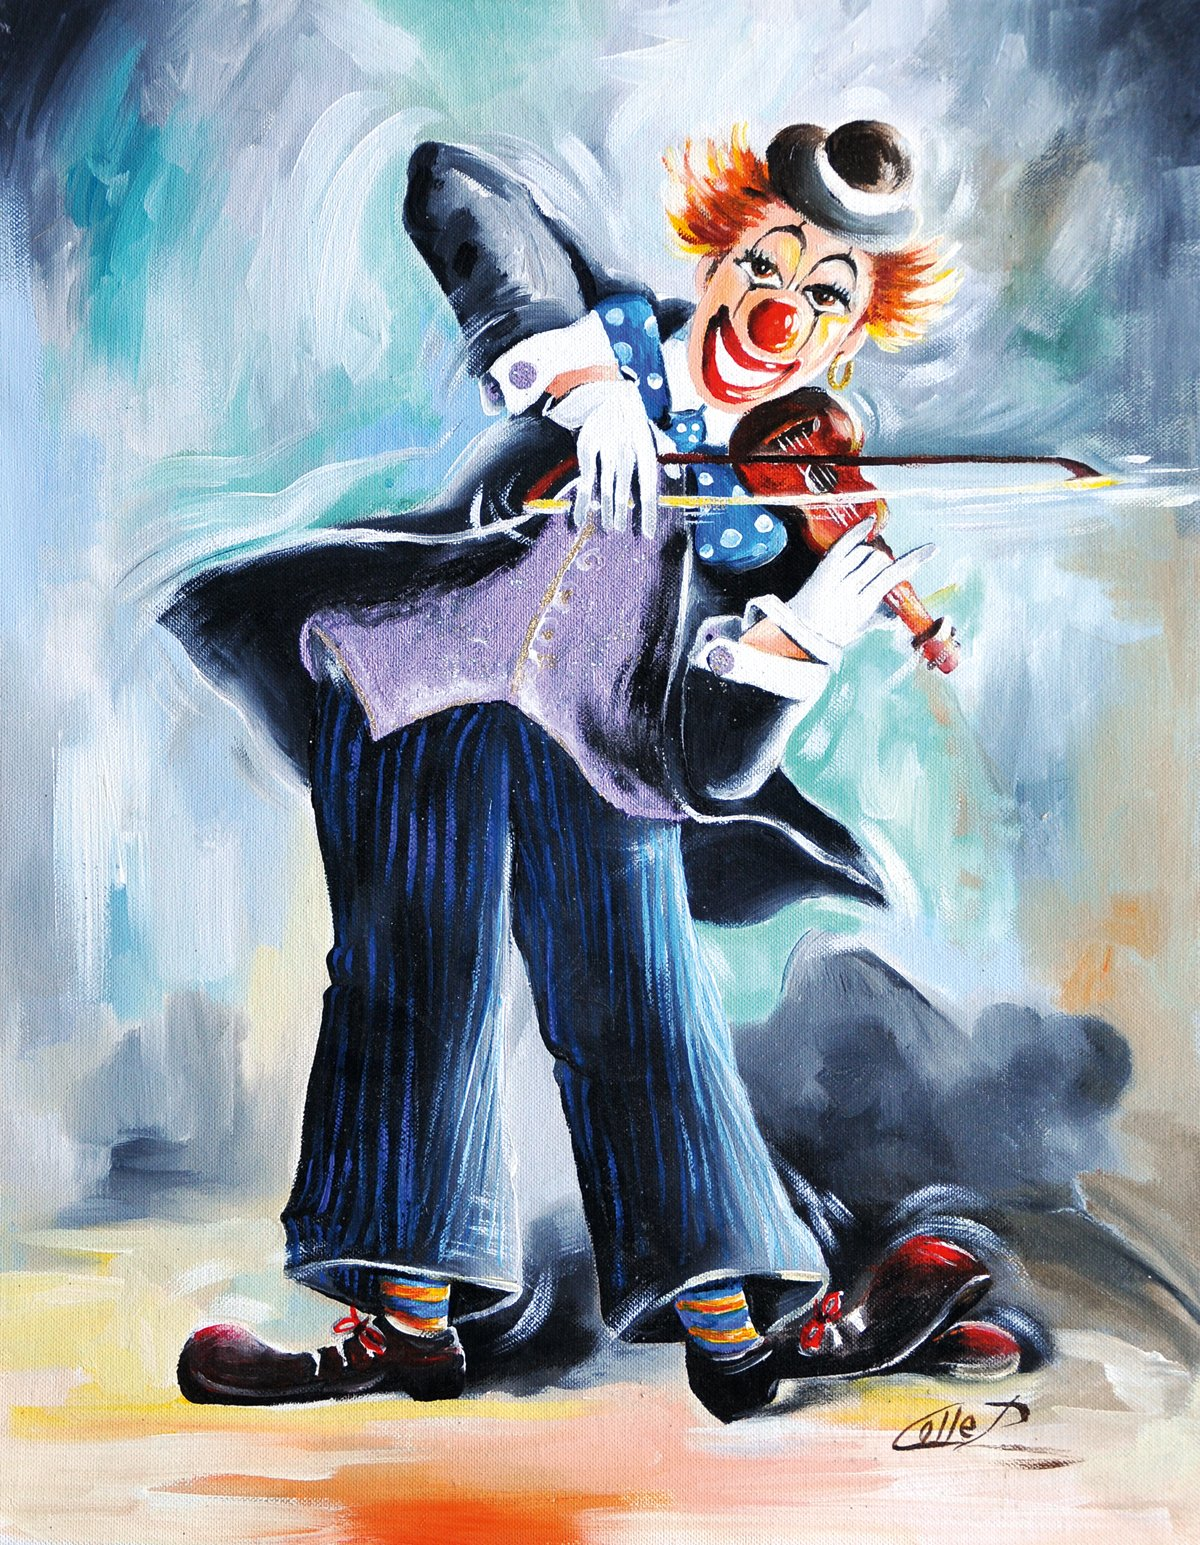 Pasquale Colle - Clown I